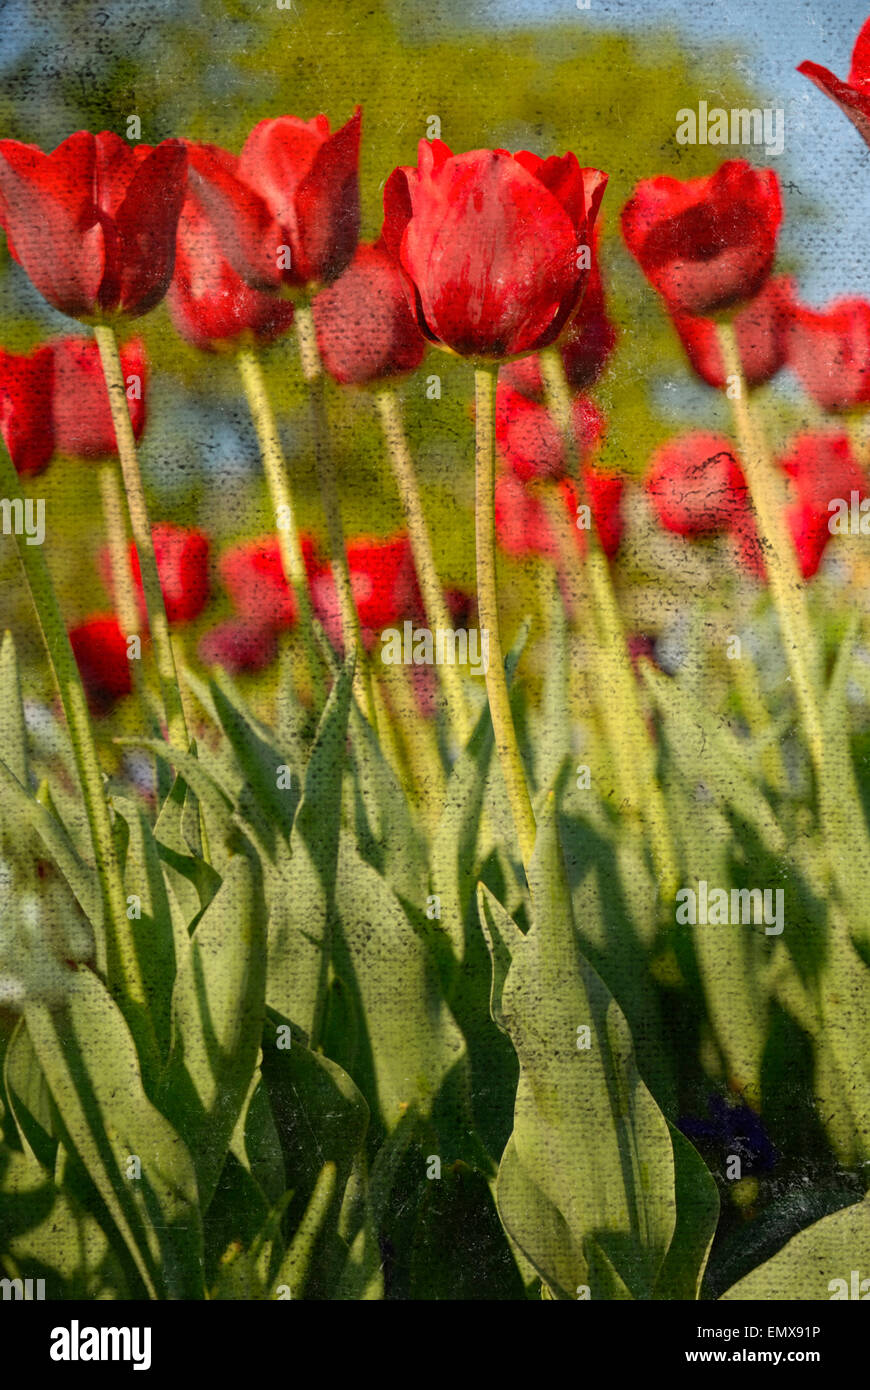 Red tulips with distressed, grungy texture overlay, which adds aged or weathered effect to the photo. - Stock Image